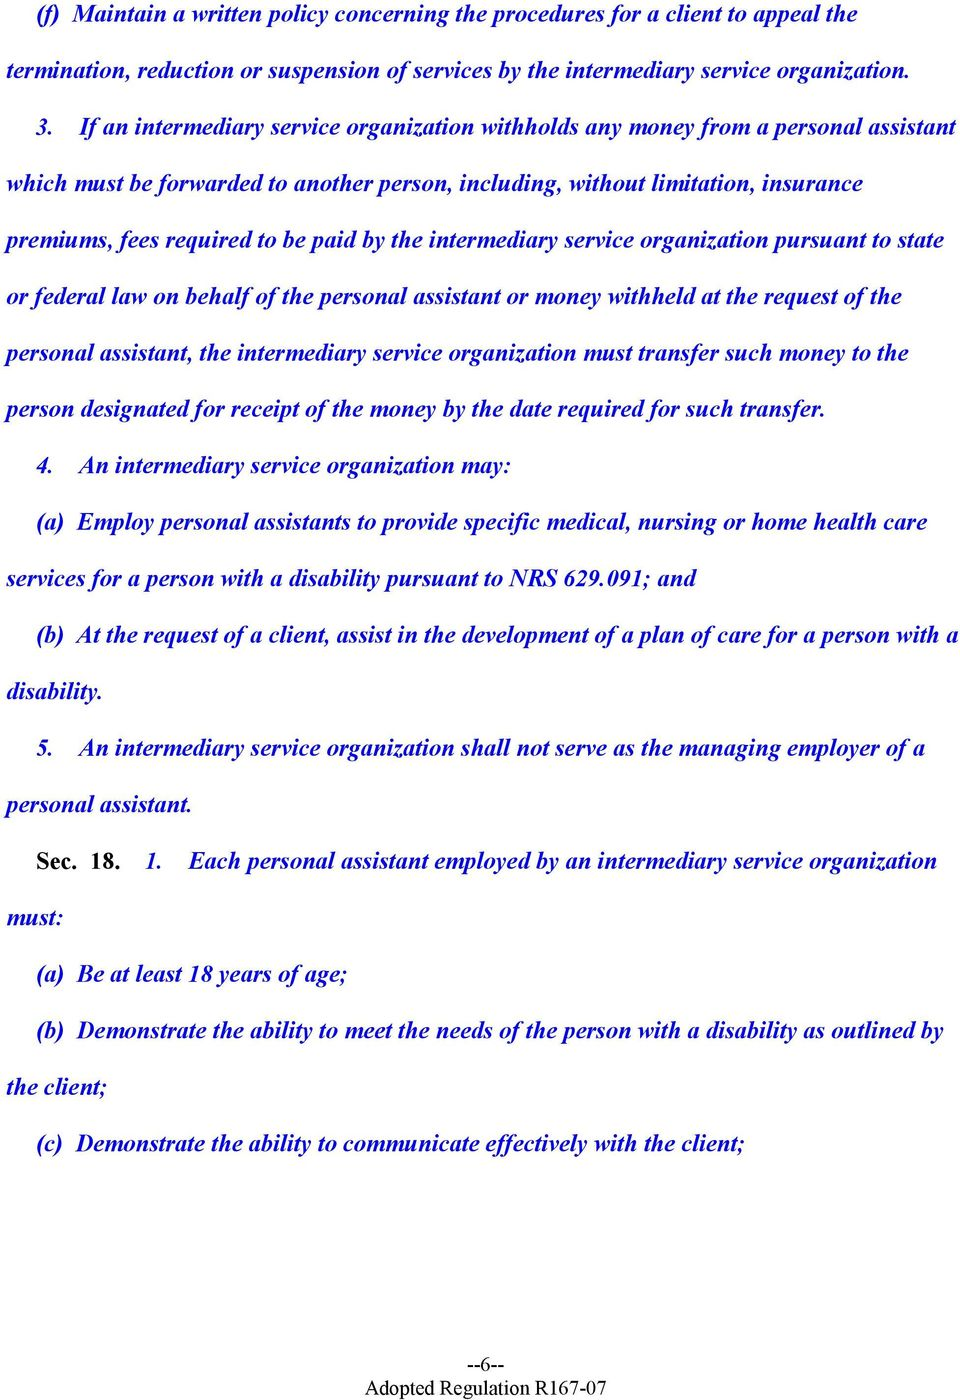 paid by the intermediary service organization pursuant to state or federal law on behalf of the personal assistant or money withheld at the request of the personal assistant, the intermediary service